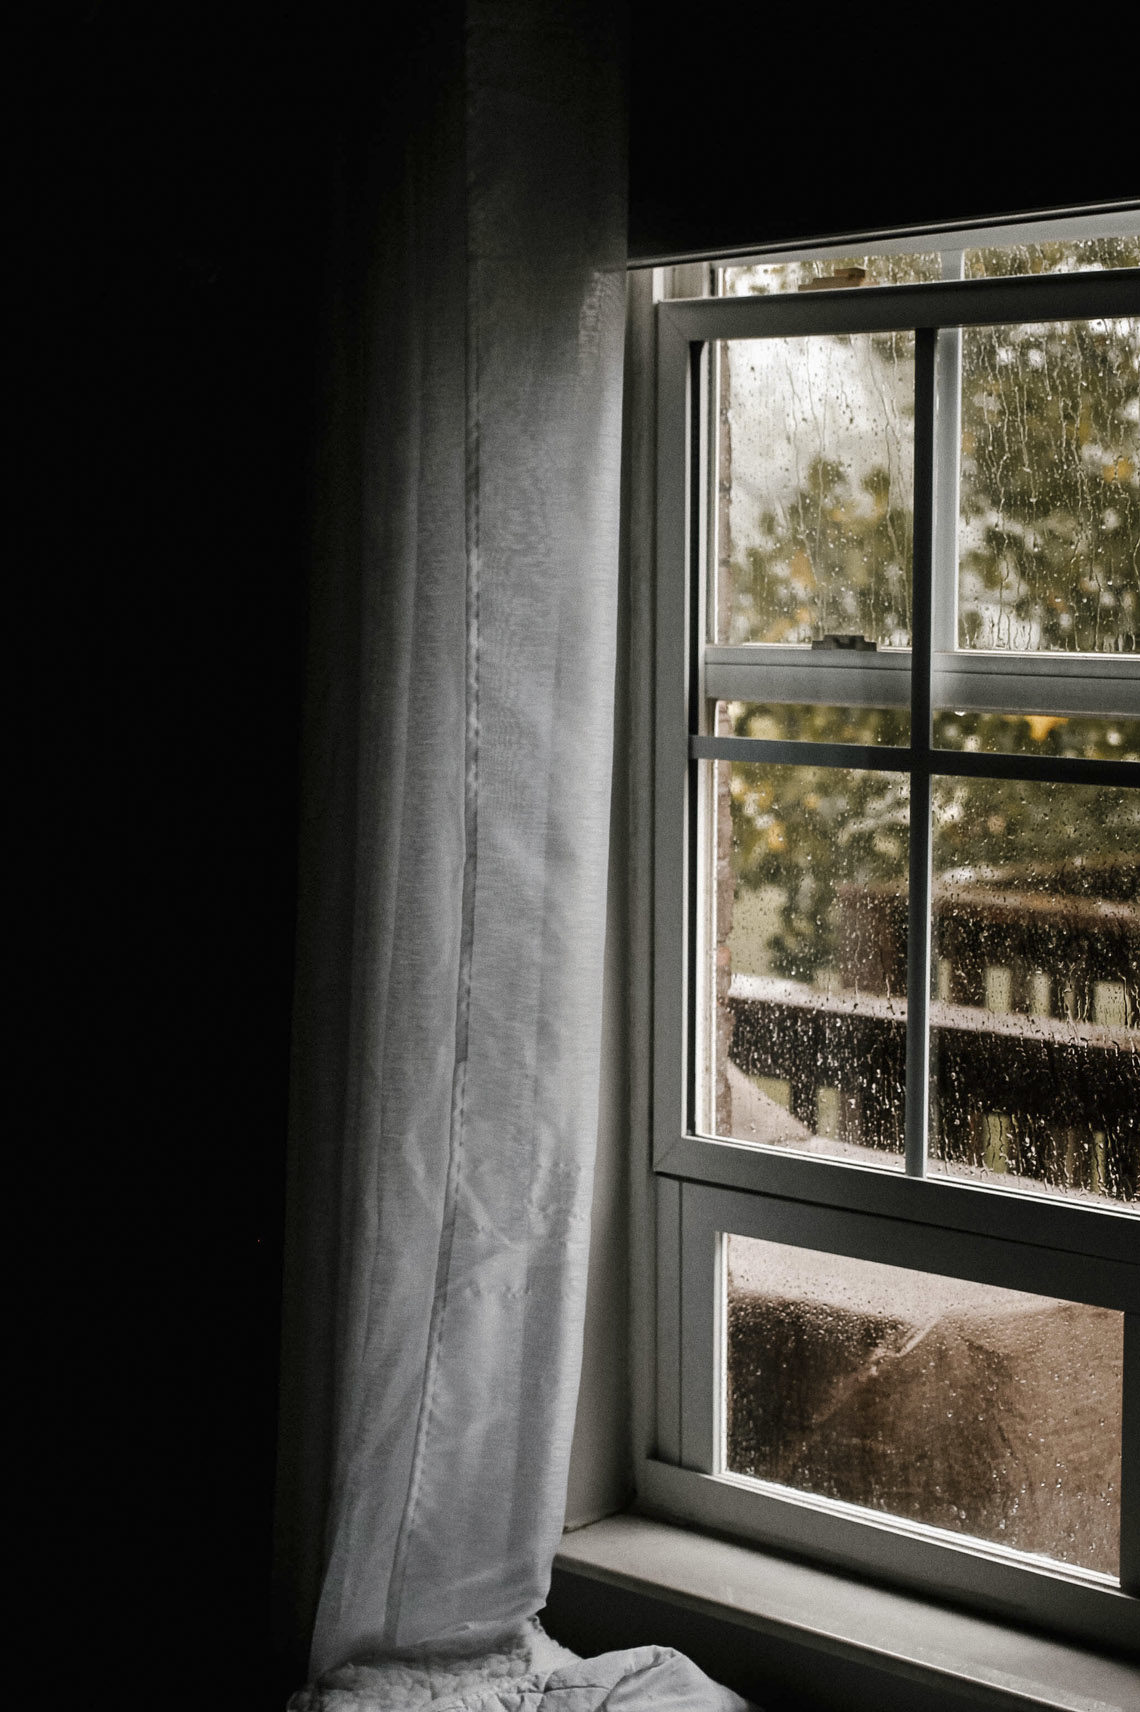 Rain on a window - things to do on a rainy day